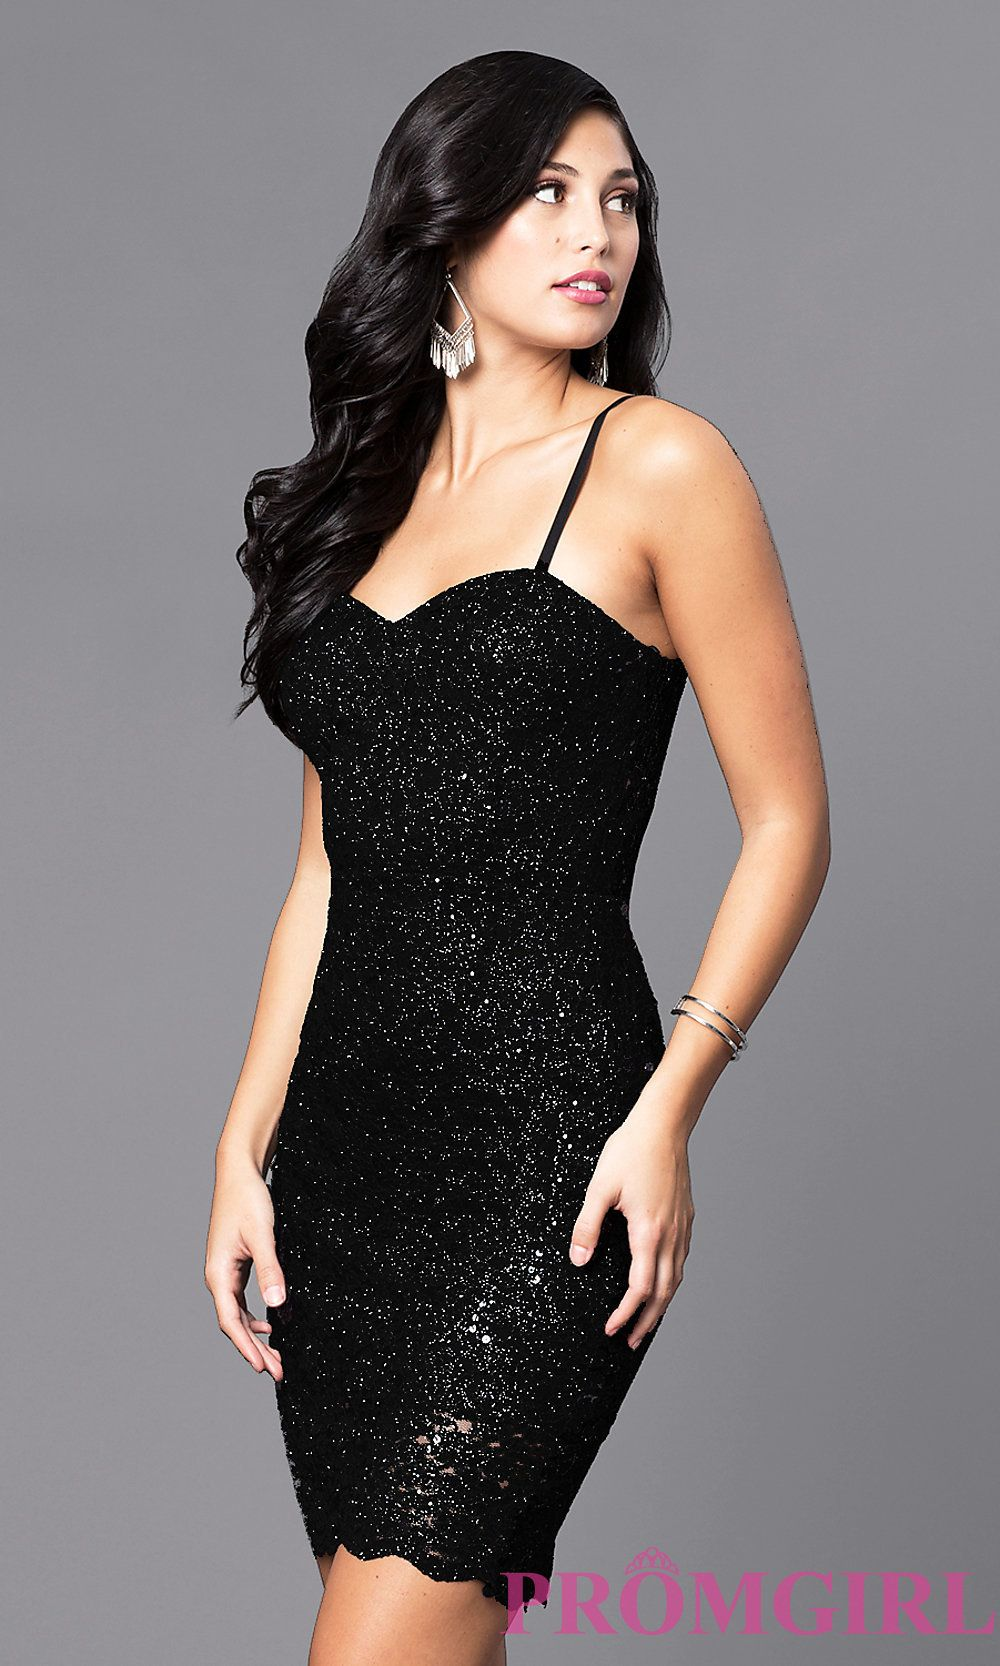 0648b57586e Short Holiday Party Dress with Sequined Lace. I like Style AS-i567329N4  from PromGirl.com